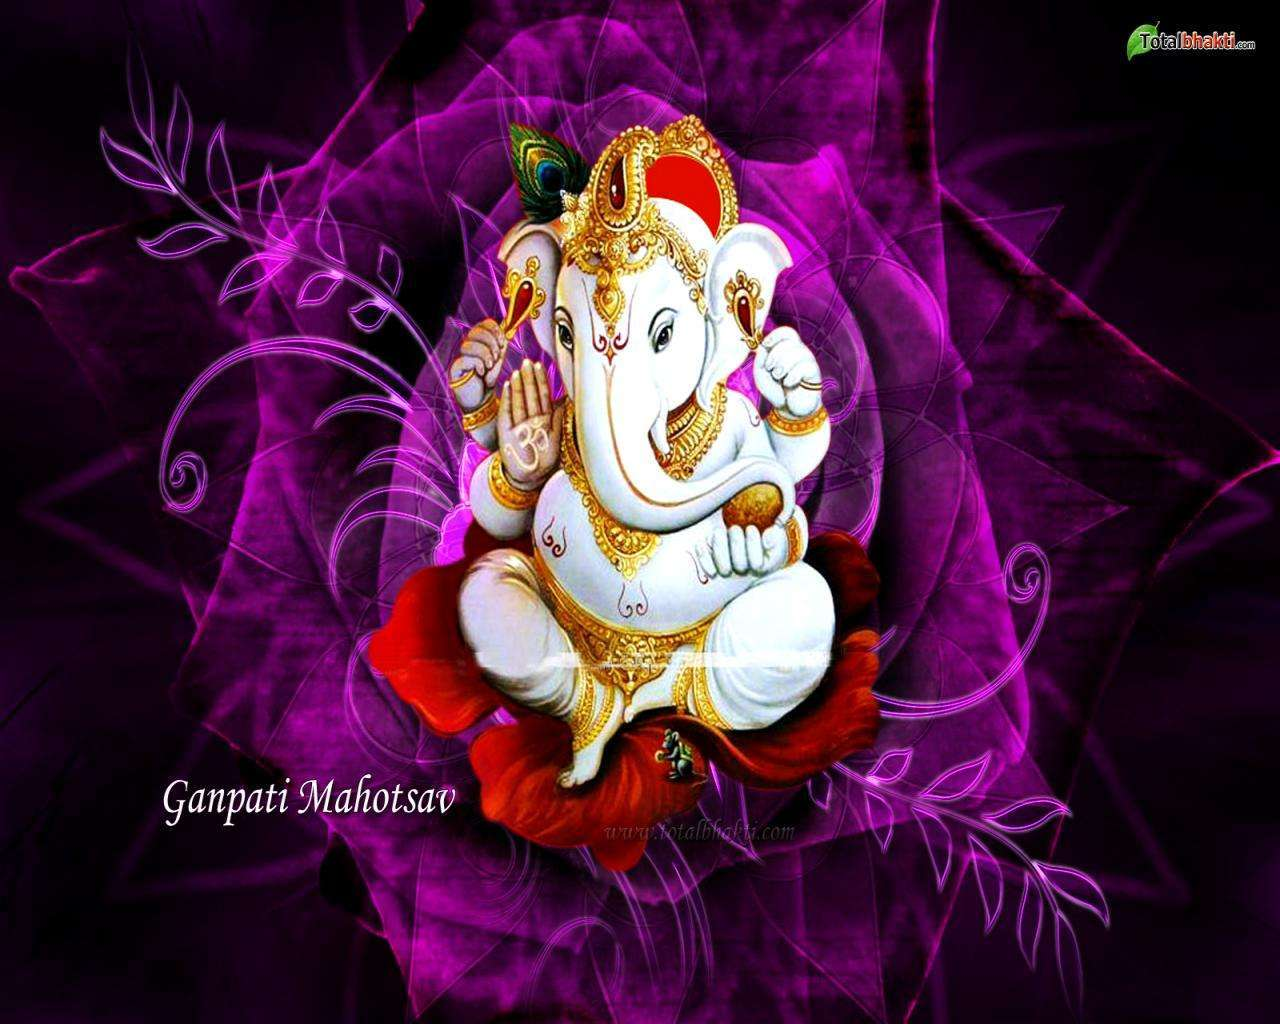 51 Best Ganesha Wallpapers   Series 6 Wallpapers 1280x1024